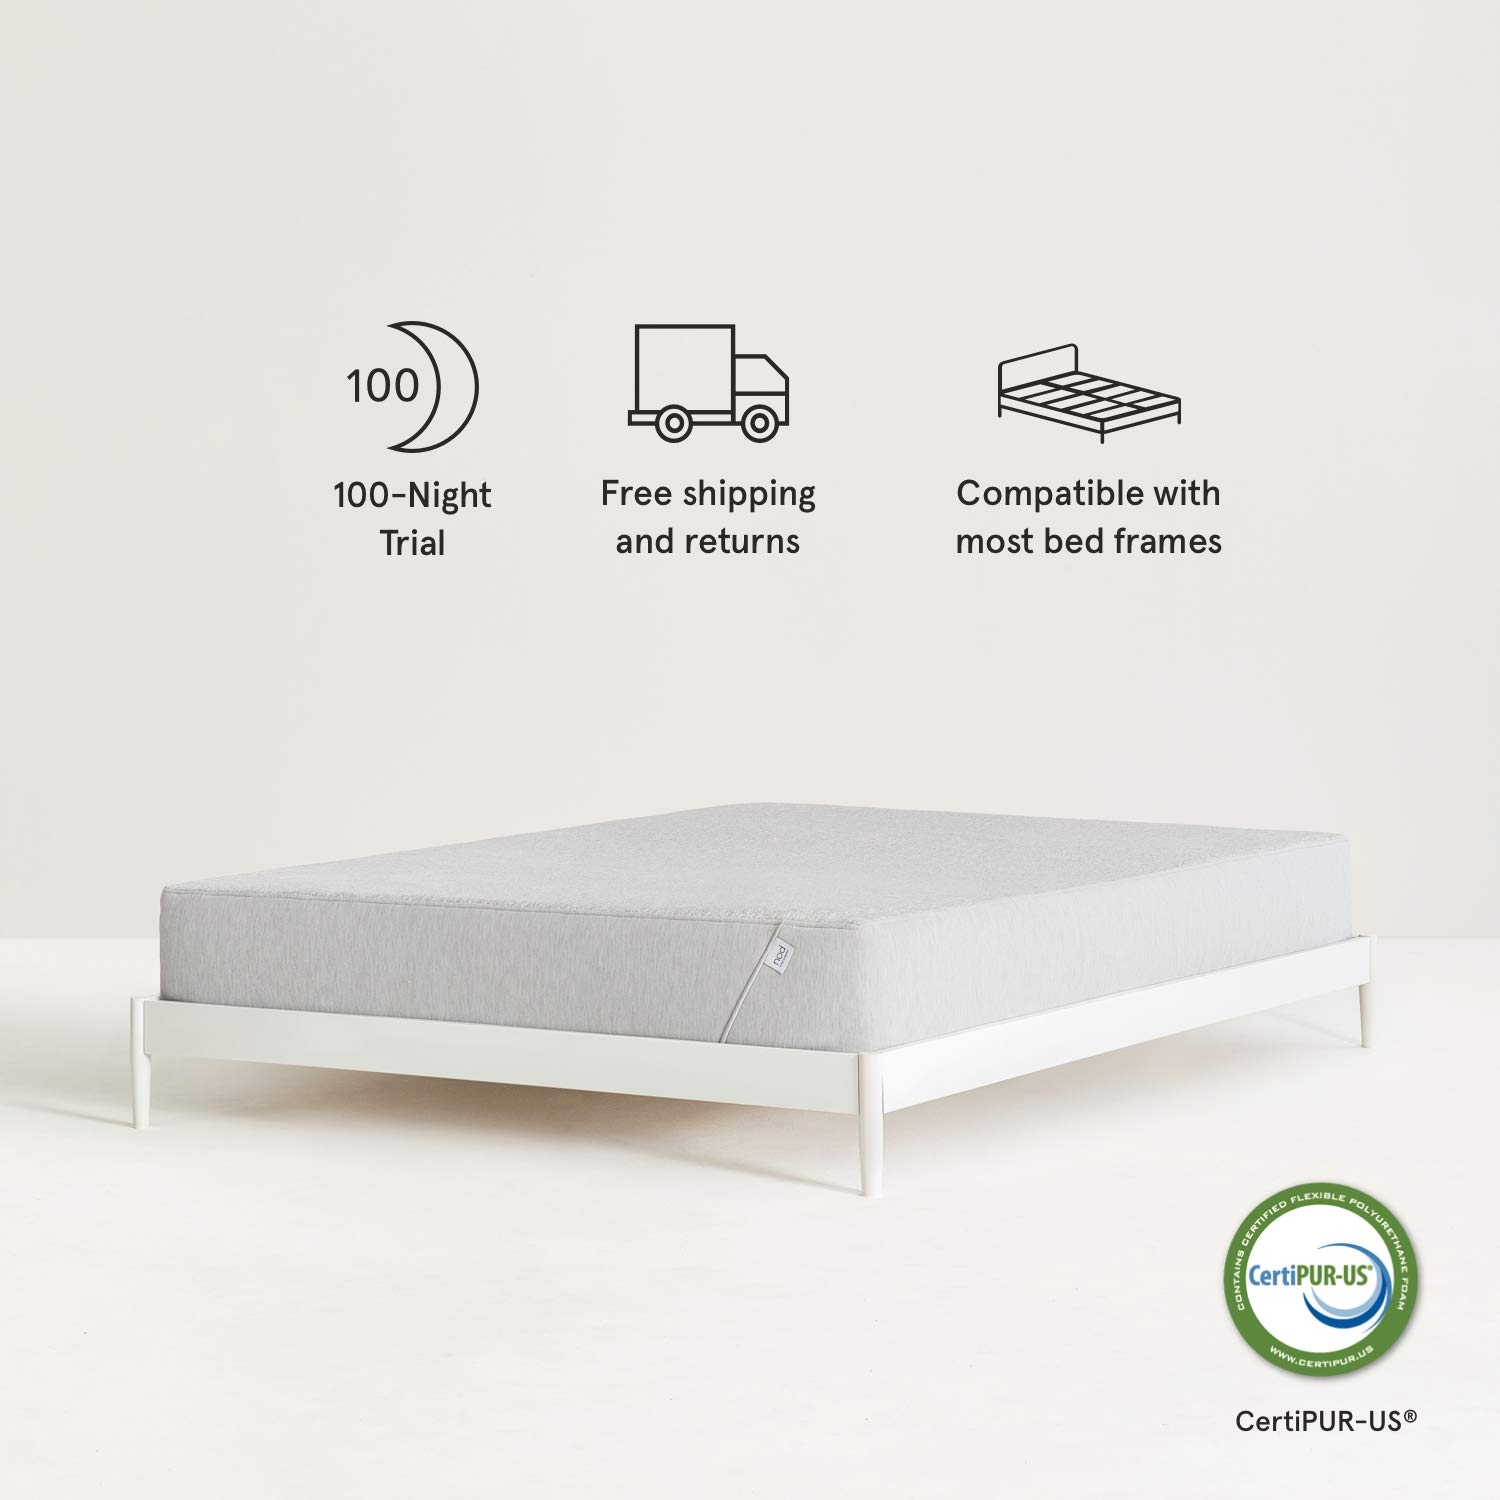 Nod Hybrid by Tuft & Needle Queen Mattress, Amazon-Exclusive Soft Memory Foam and Firm Innerspring Bed in a Box with Support and Cooling Gel, 100-Night Sleep Trial, 10-Year Limited Warranty by Nod by Tuft & Needle